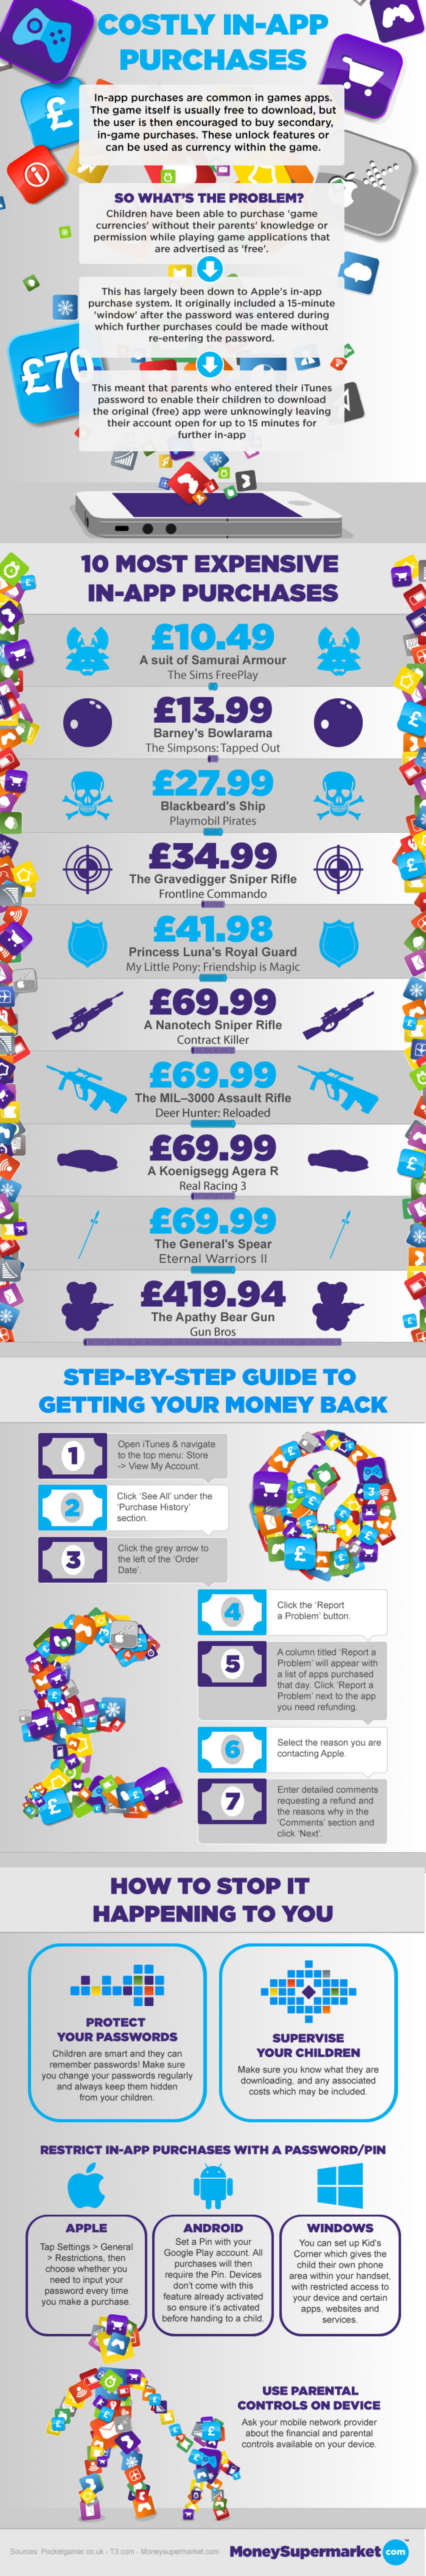 Costly In-App Purchases [InfoGraphic] Infographic